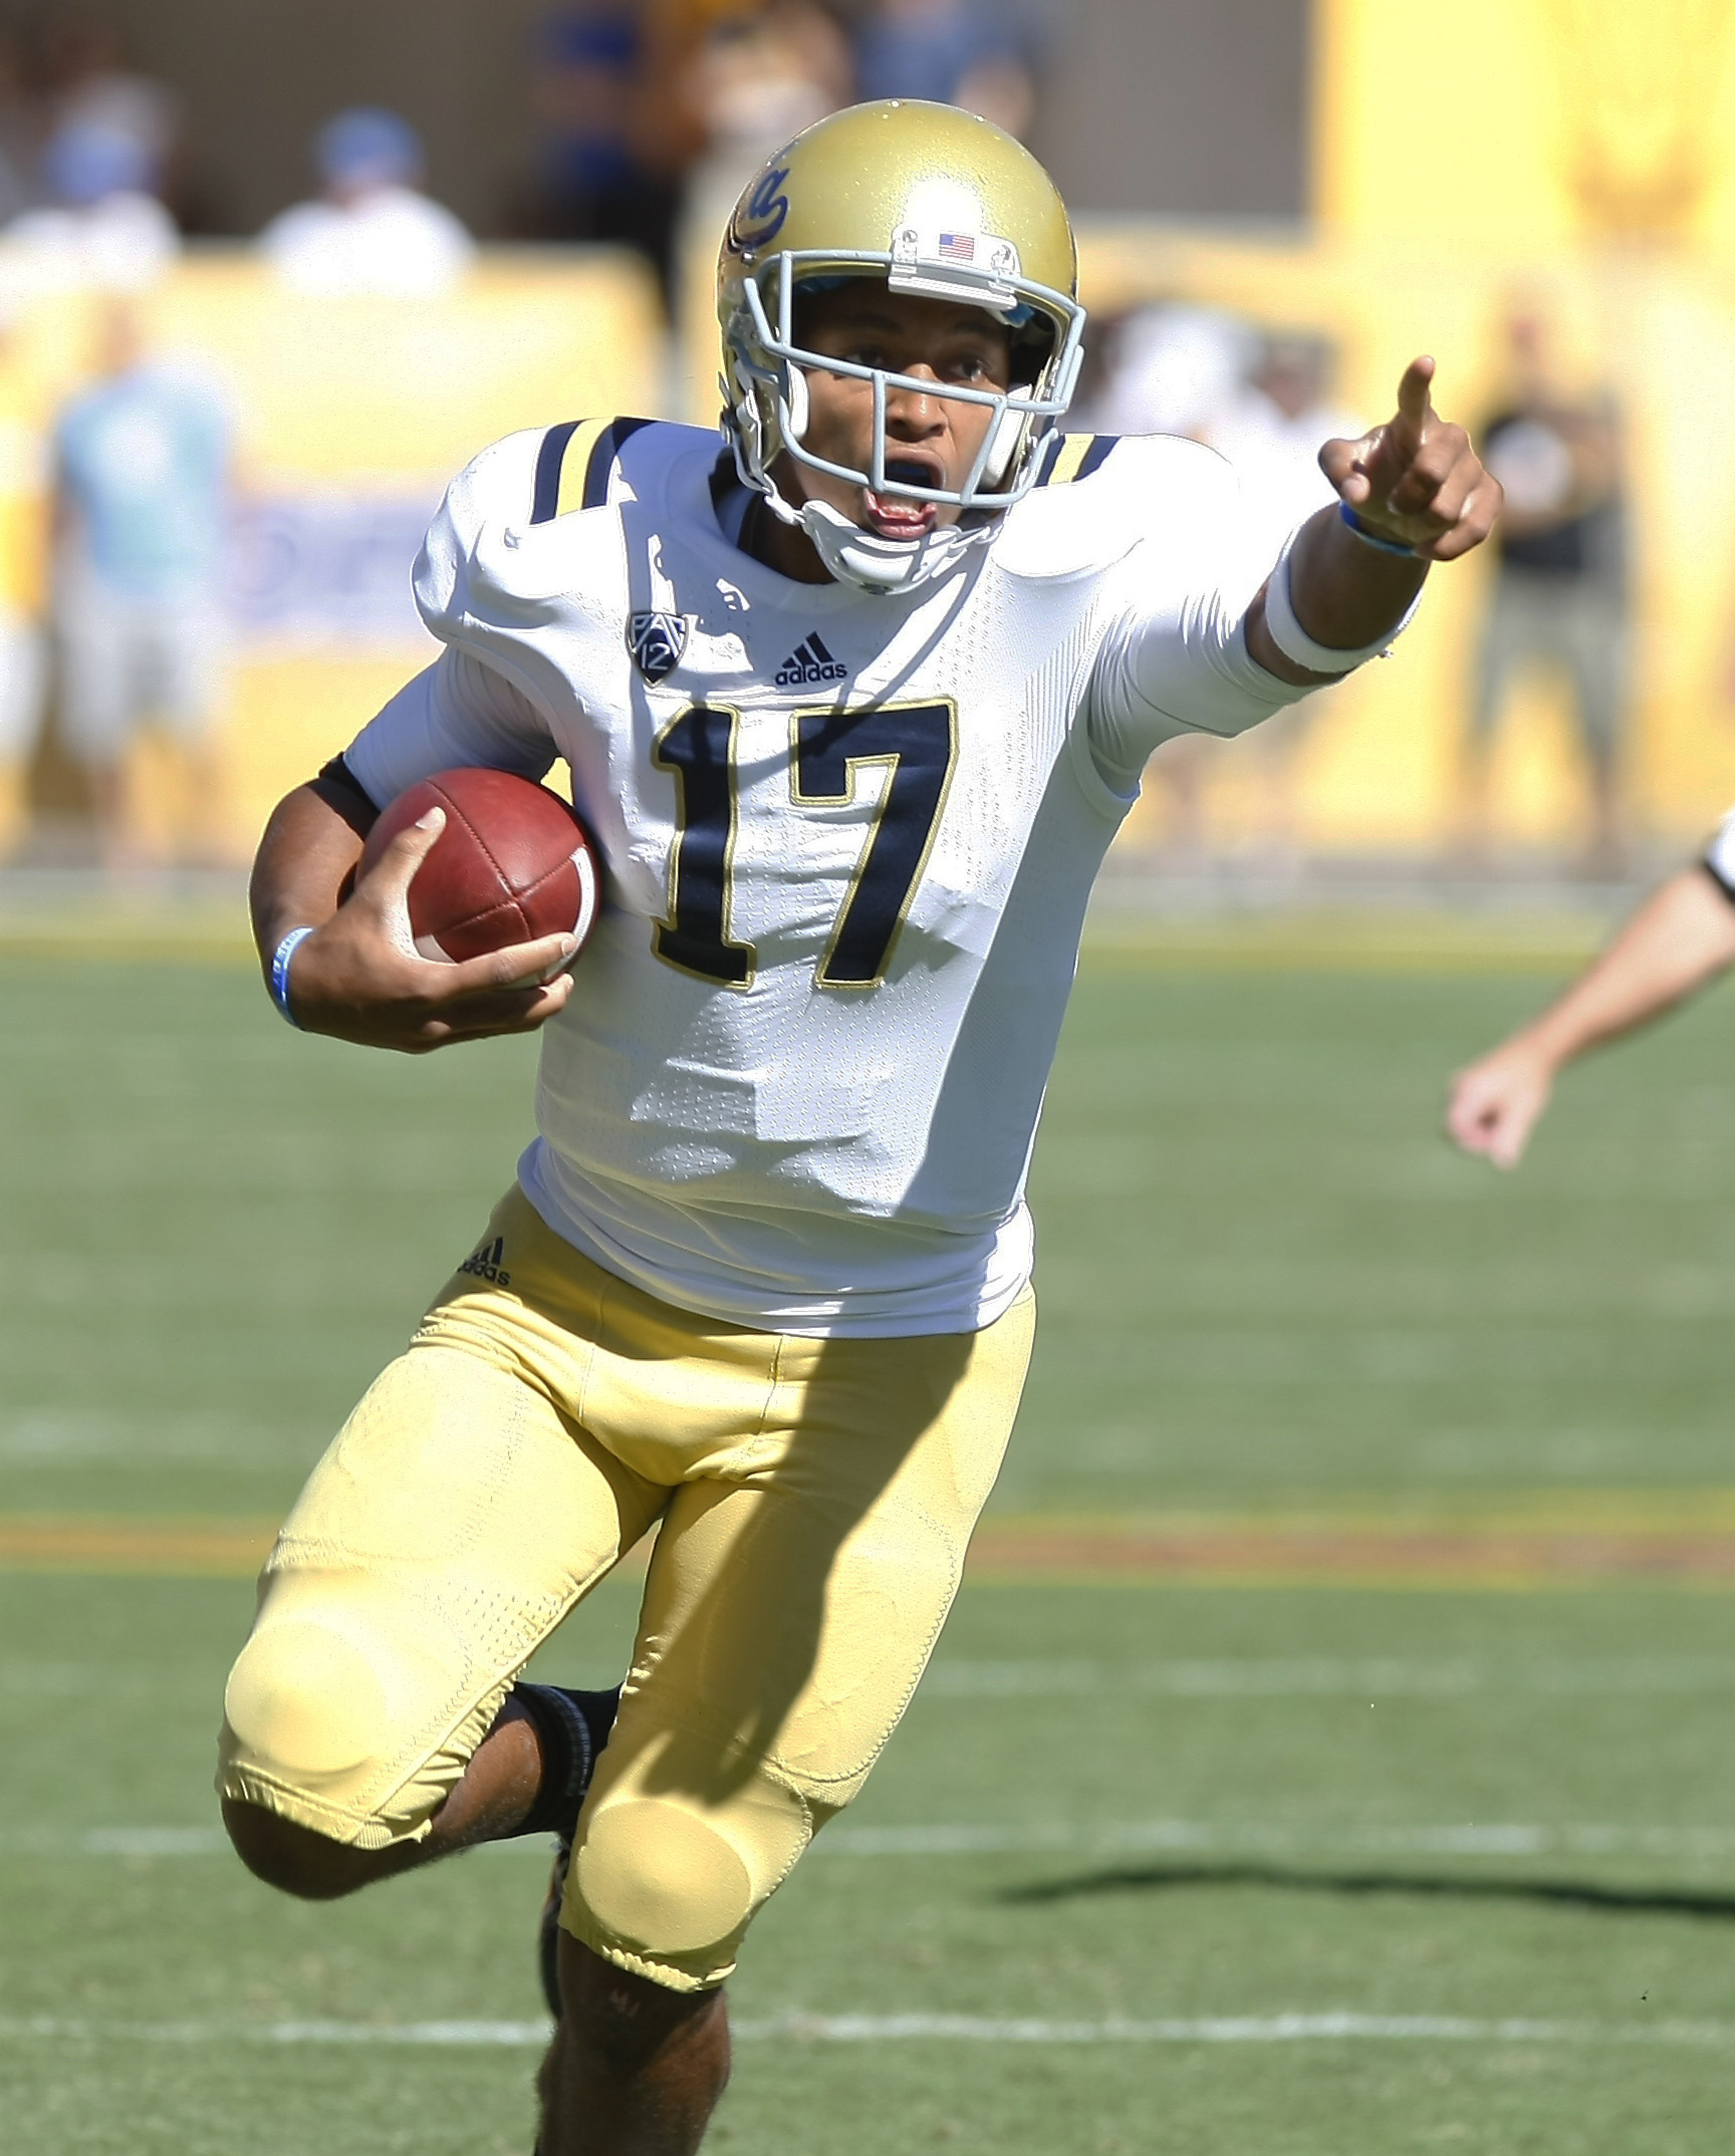 Brett Hundley and the Bruins take the first step of a very promising season.